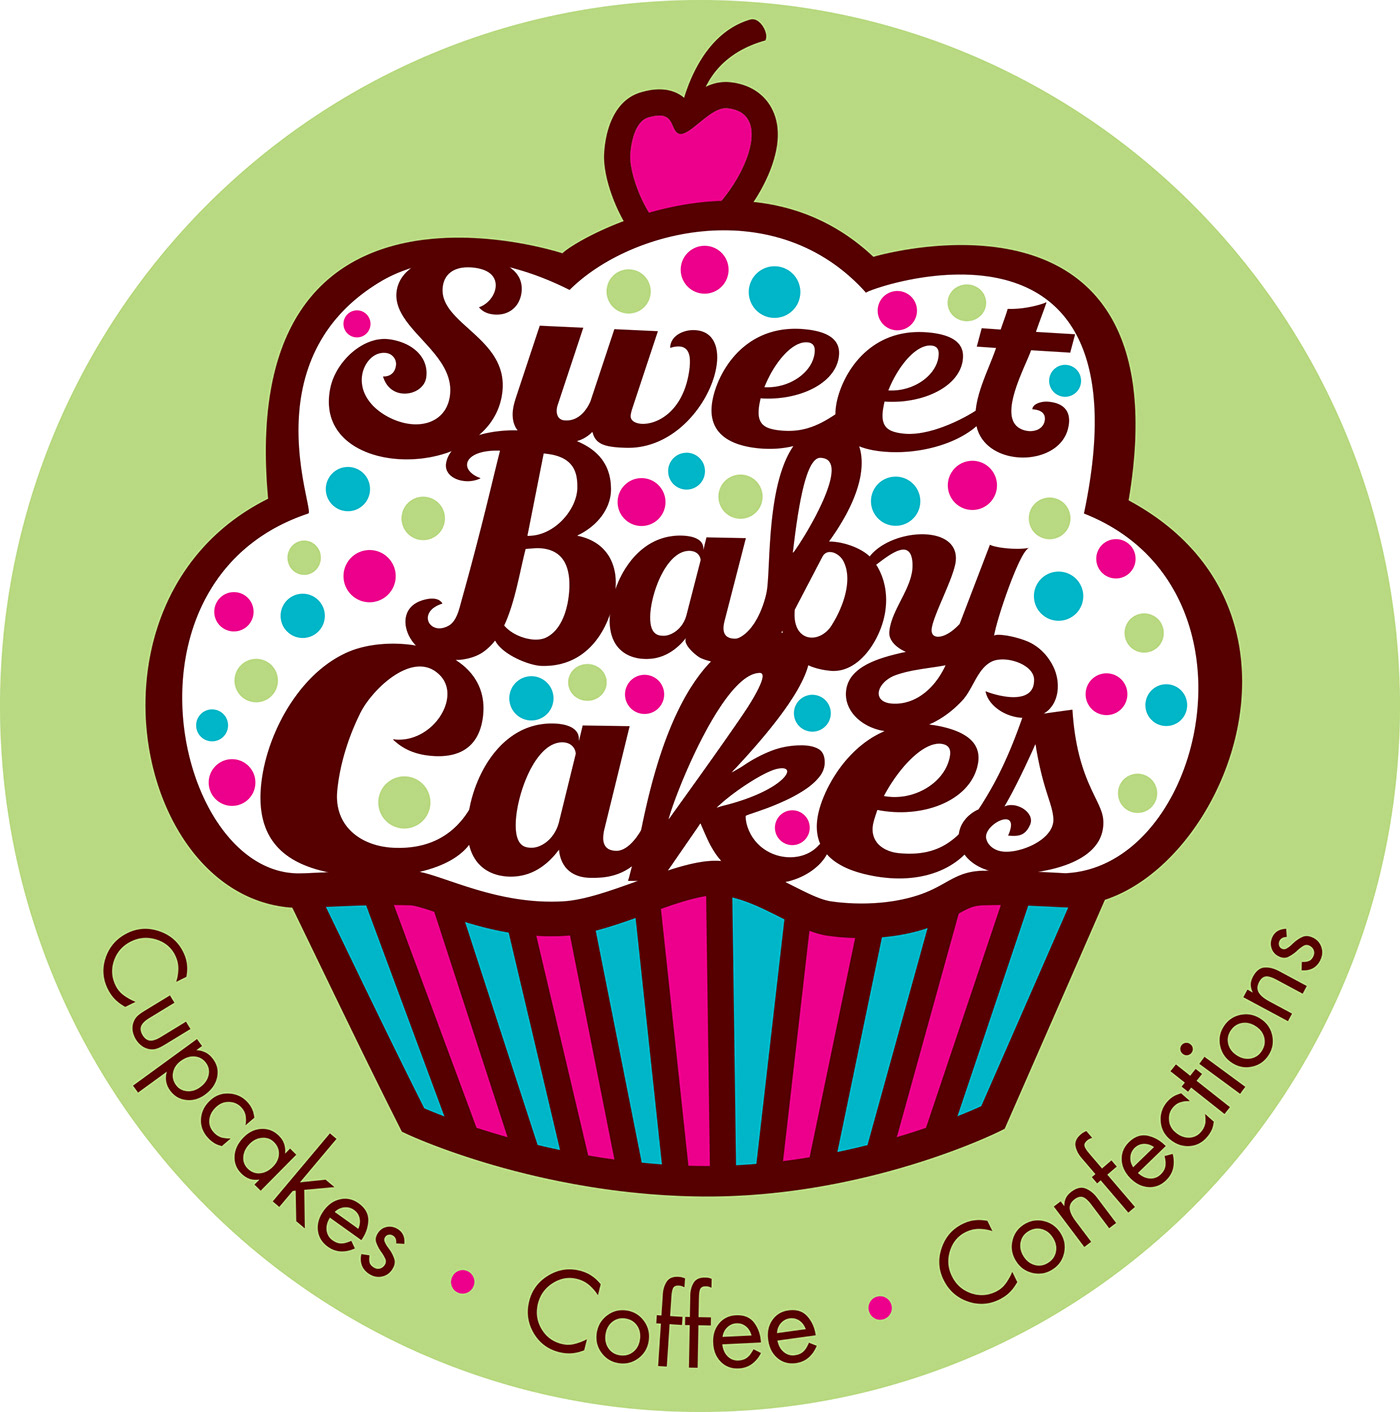 Sweet Baby Cakes logo and sign